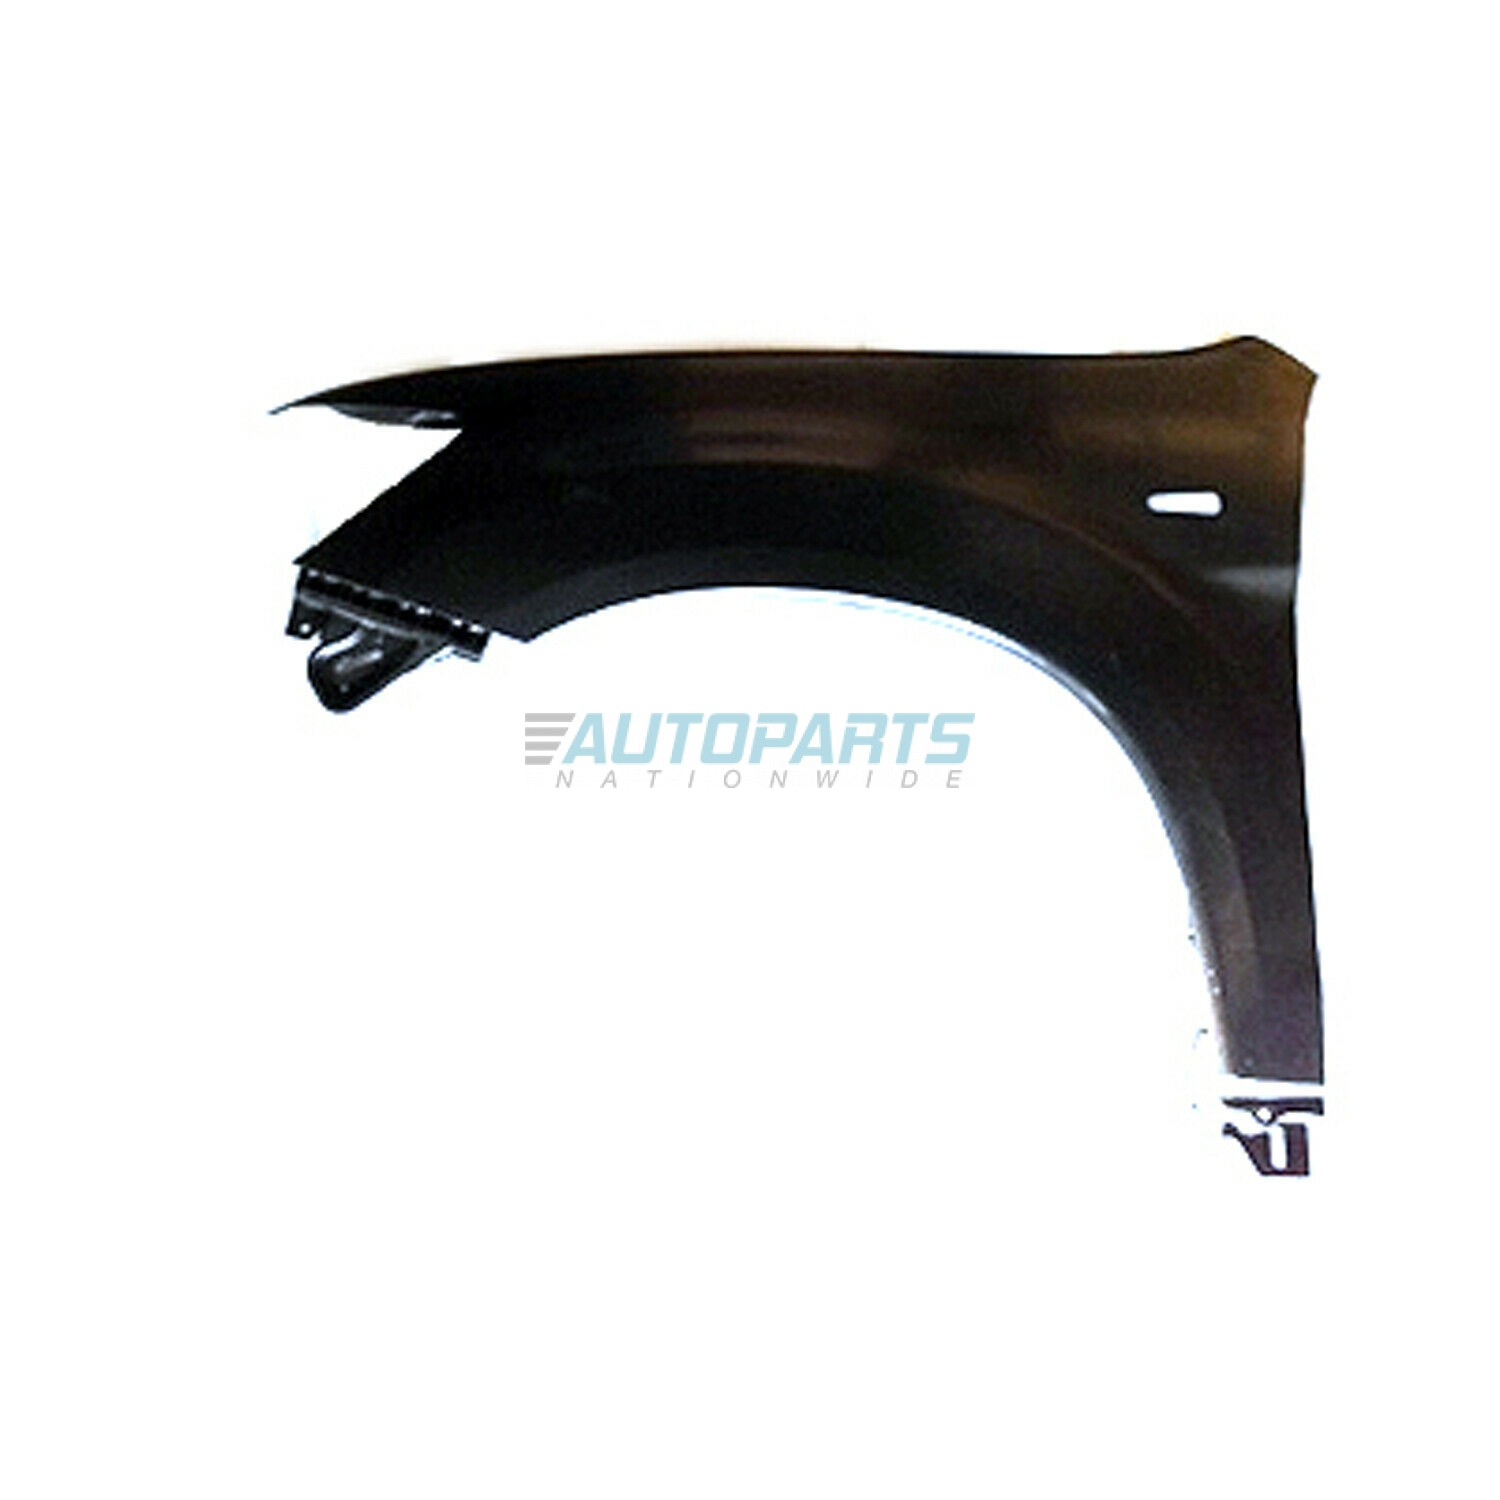 New Radiator Support for Mitsubishi Outlander Sport MI1225157 2011 to 2015